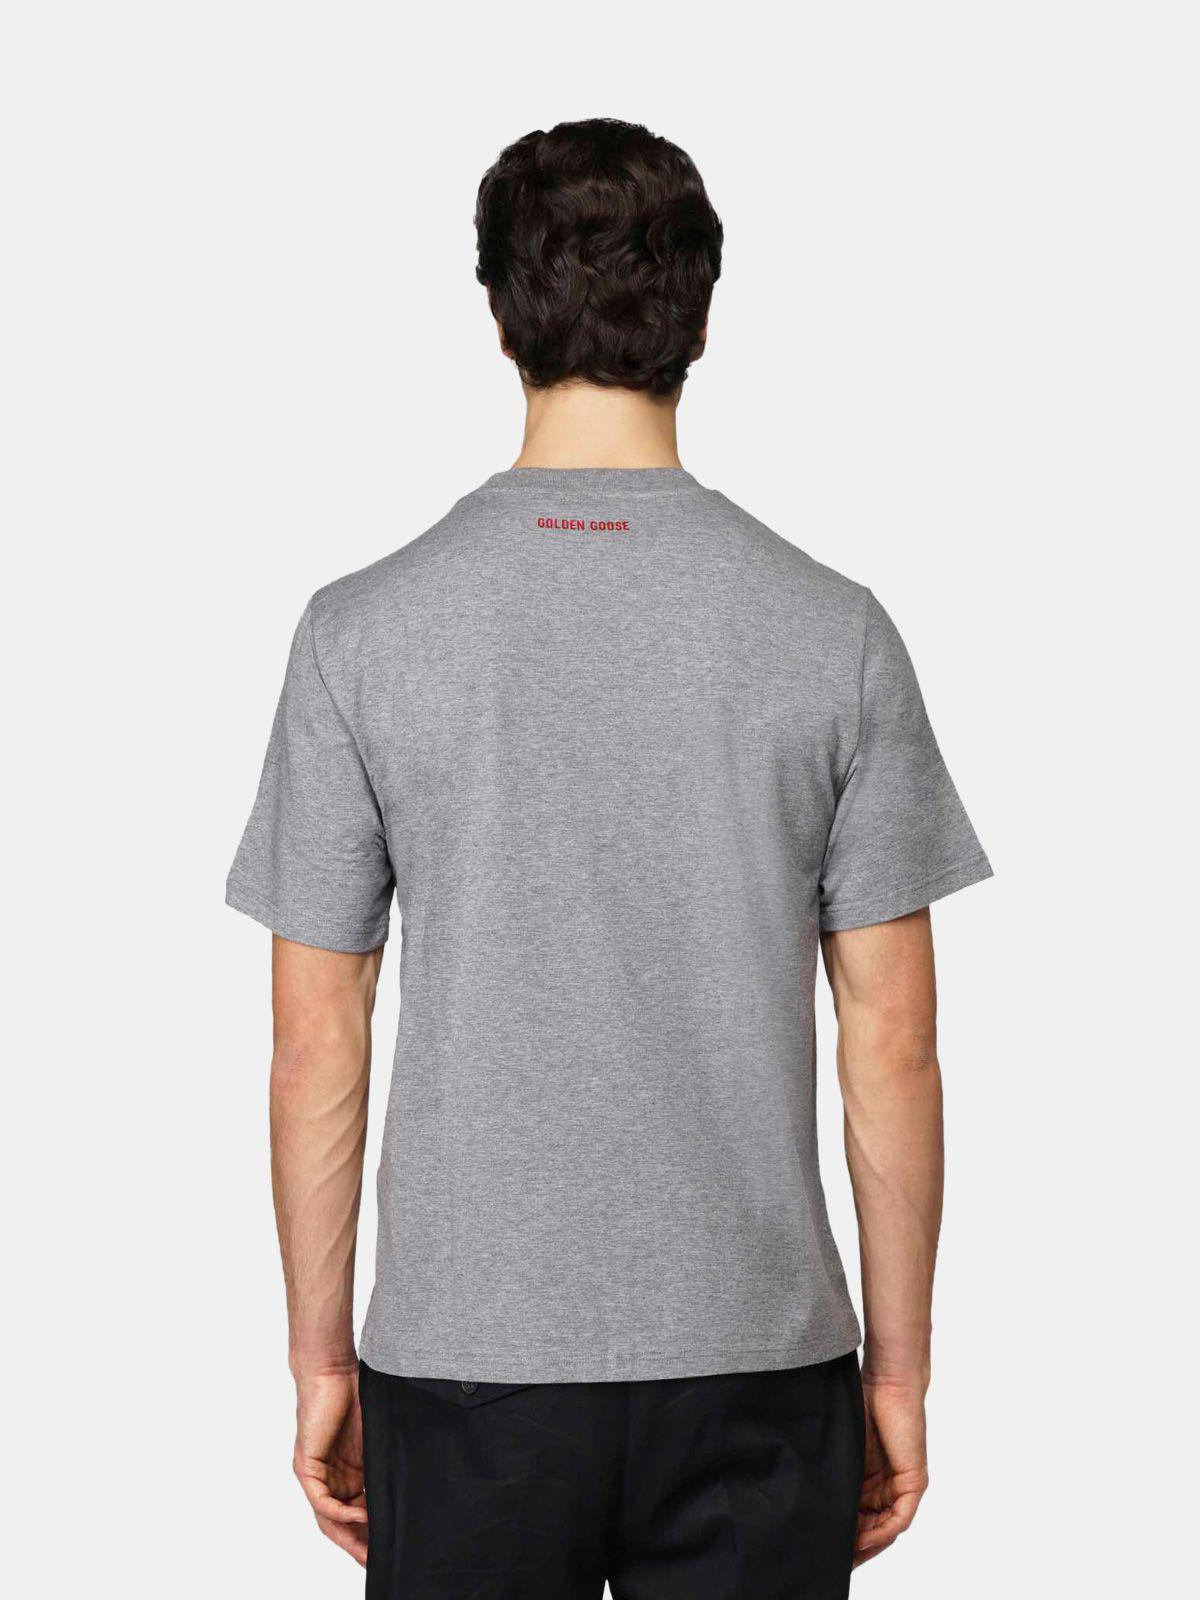 Grey Golden T-shirt with Love embroidery 3